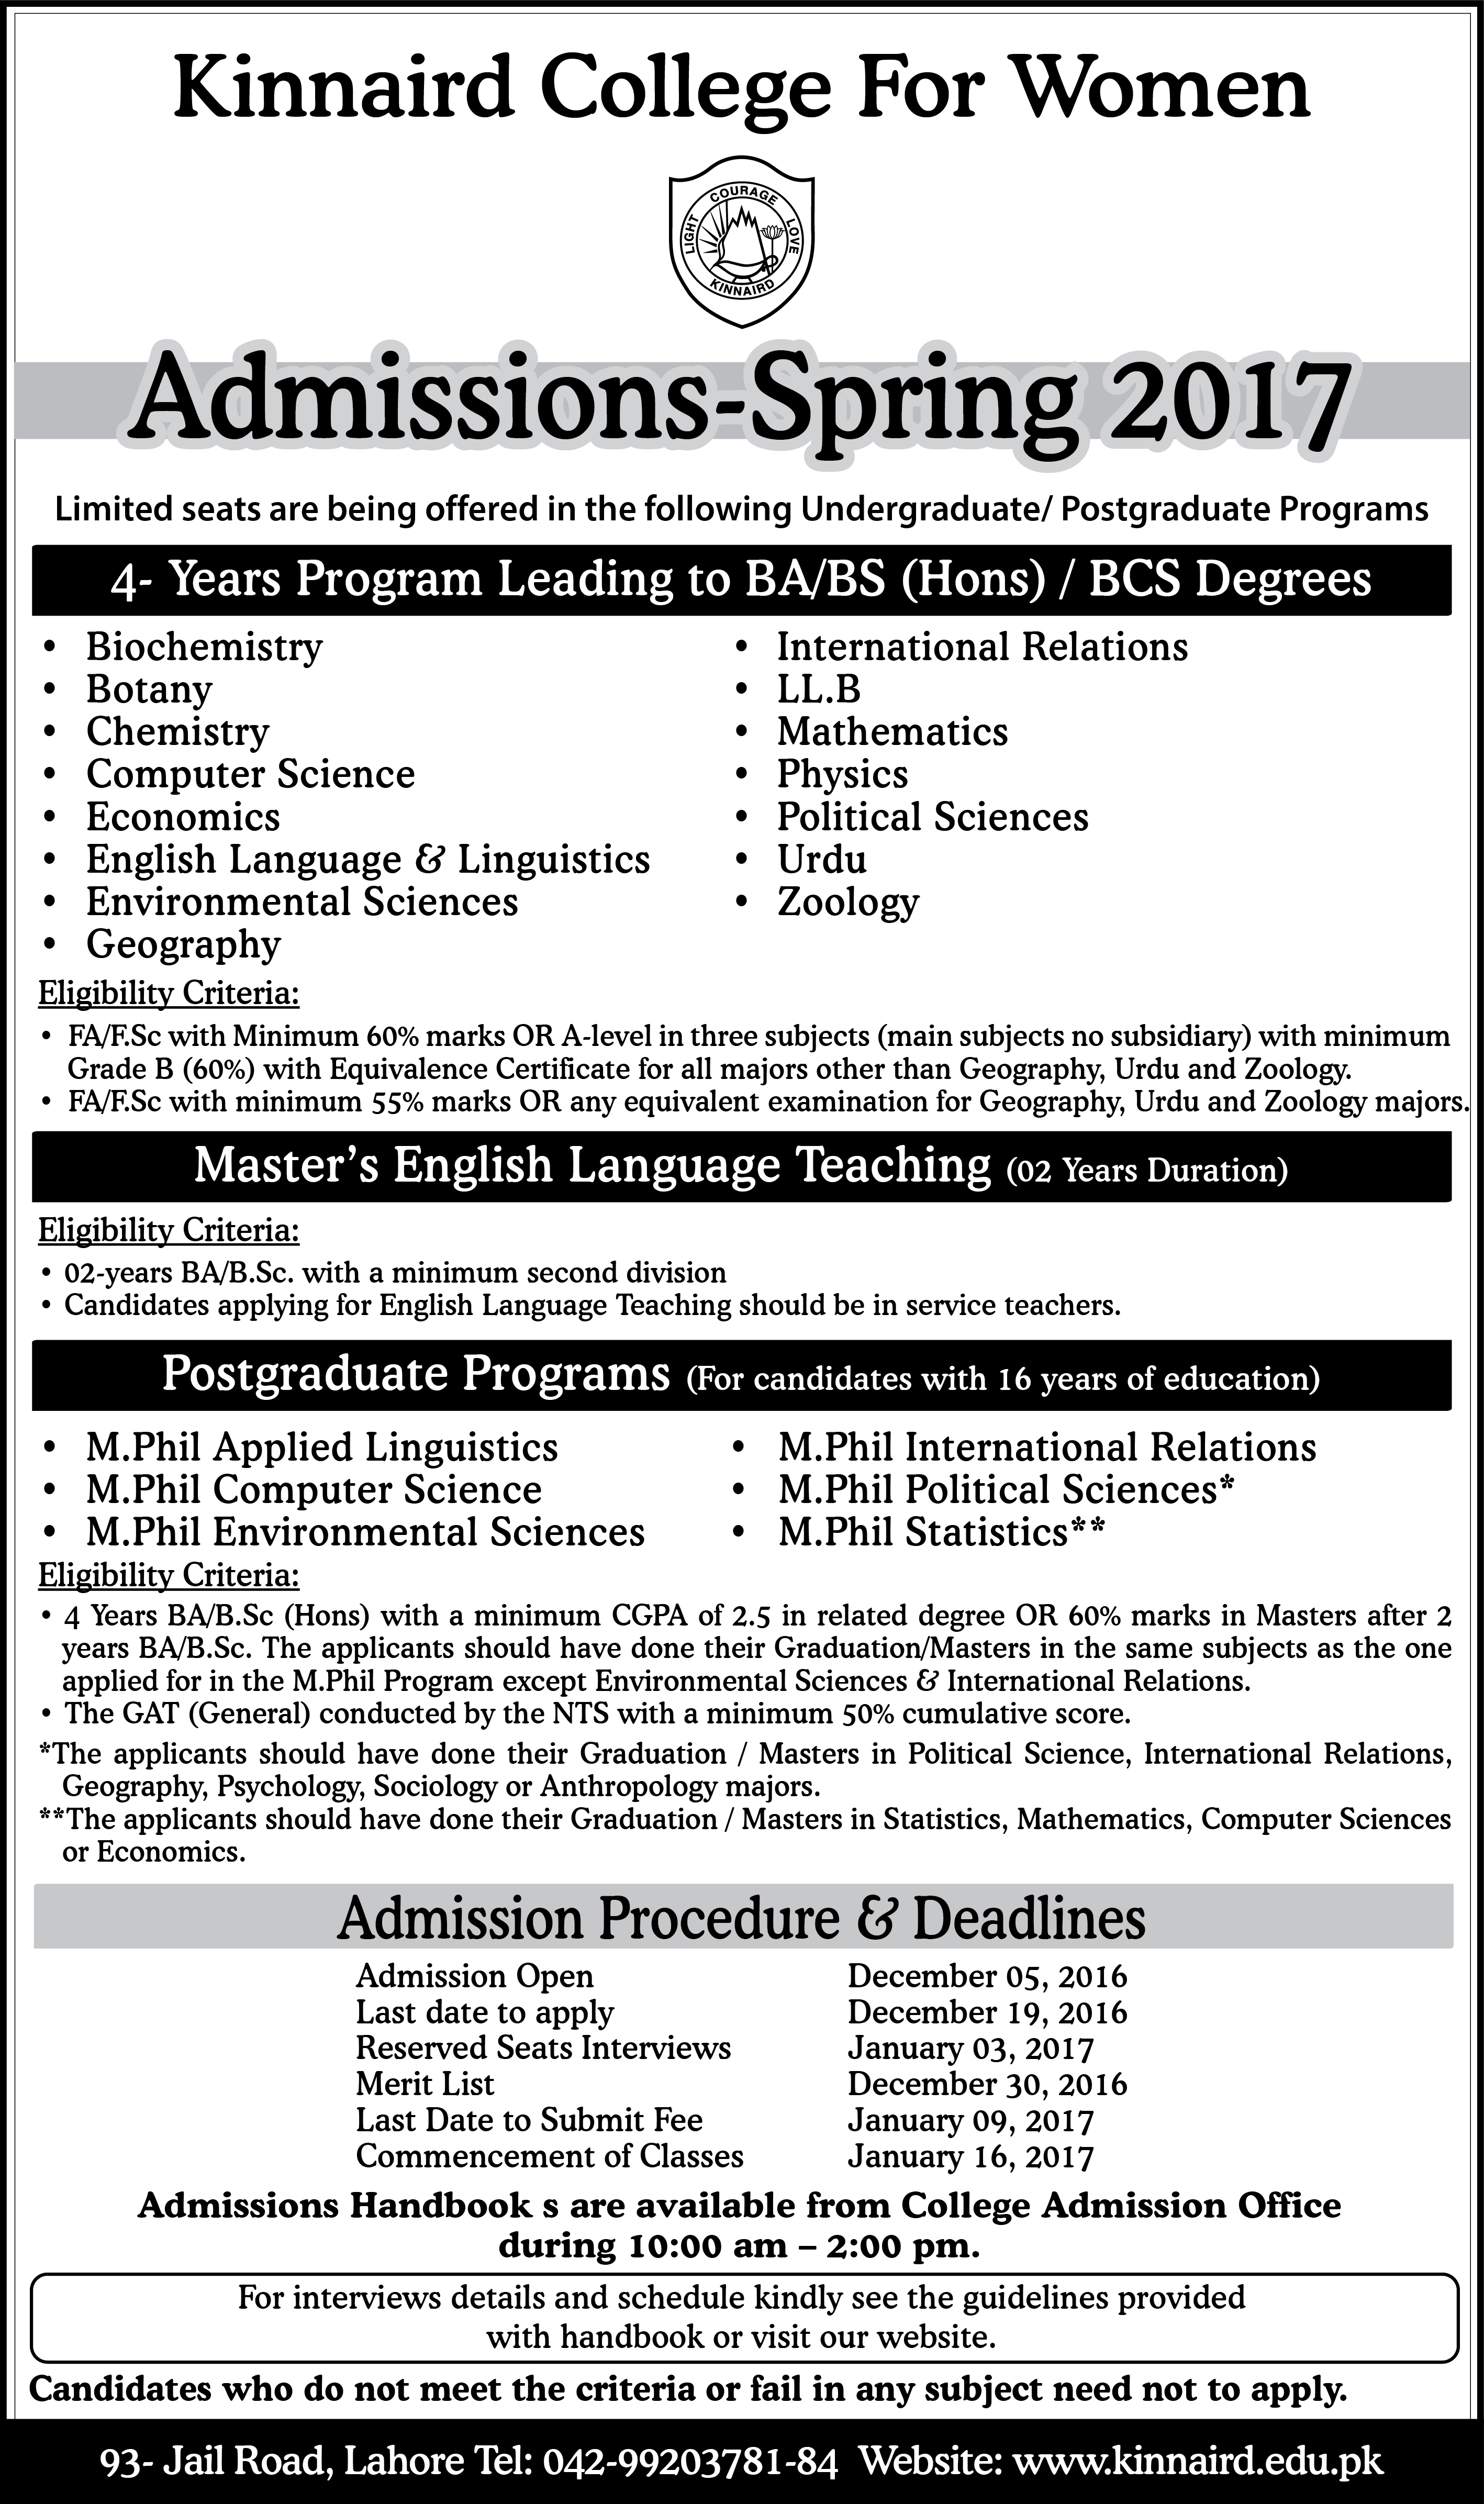 Kinnaird College for Women Spring Admissions 2017